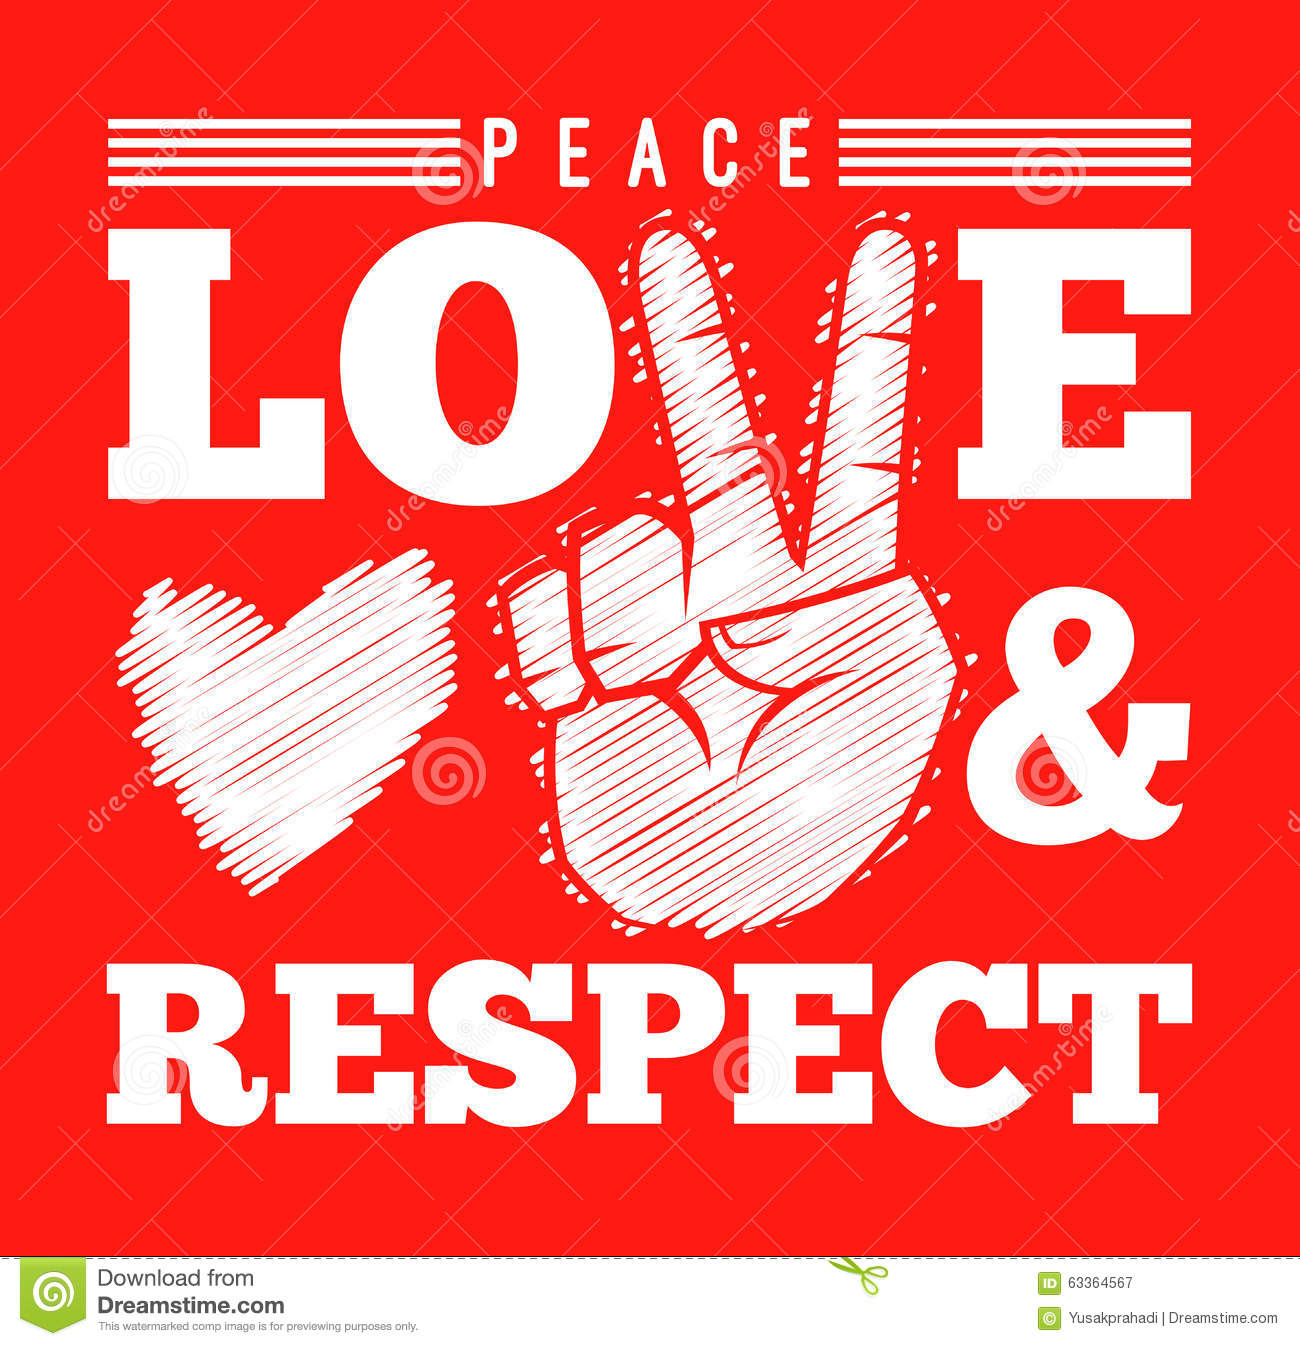 Peace love and respect symbol stock vector illustration of icon peace love and respect symbol biocorpaavc Choice Image